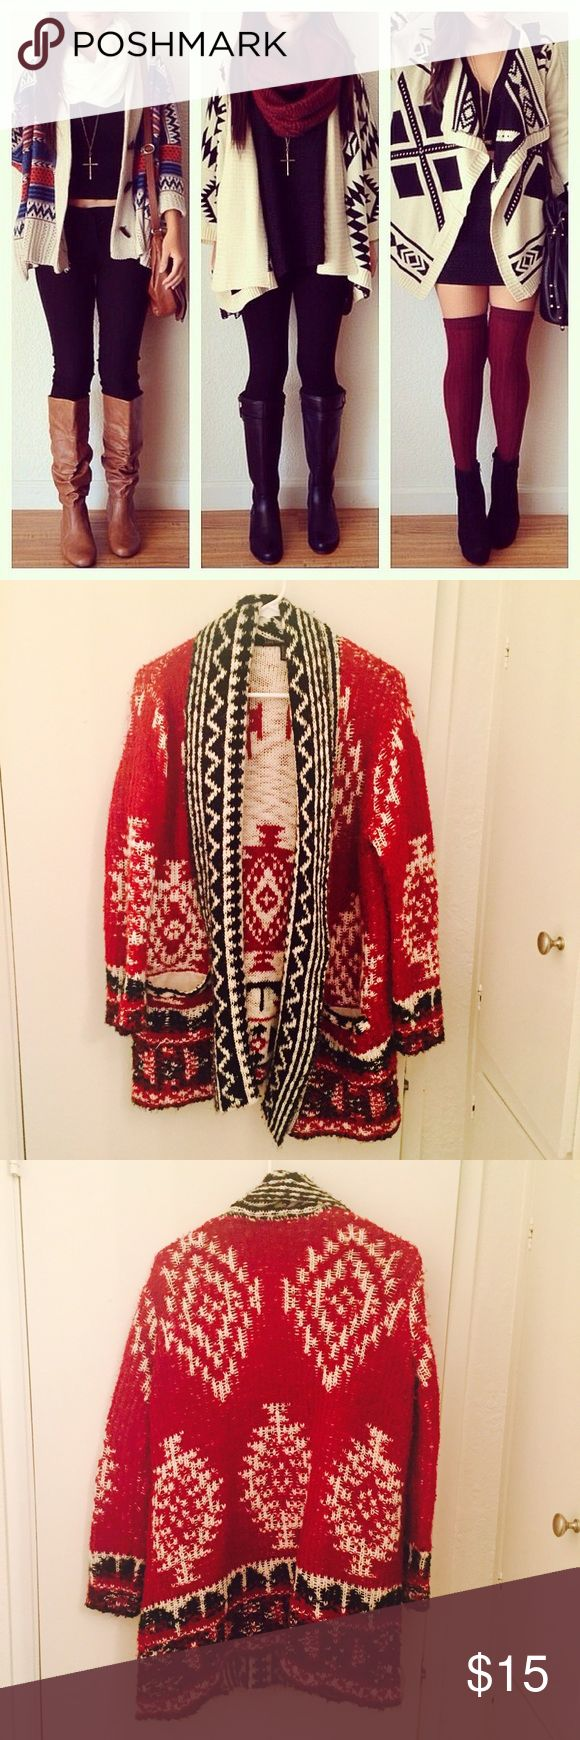 Oversized Tribal-inspired cardigan Super thick, comfy and warm. Perfect for Fall and winter with thigh high boots and a dress or skinny jeans and ankle boots. Great condition. Worn a few times. First pic for style ideas. Forever 21 Sweaters Cardigans